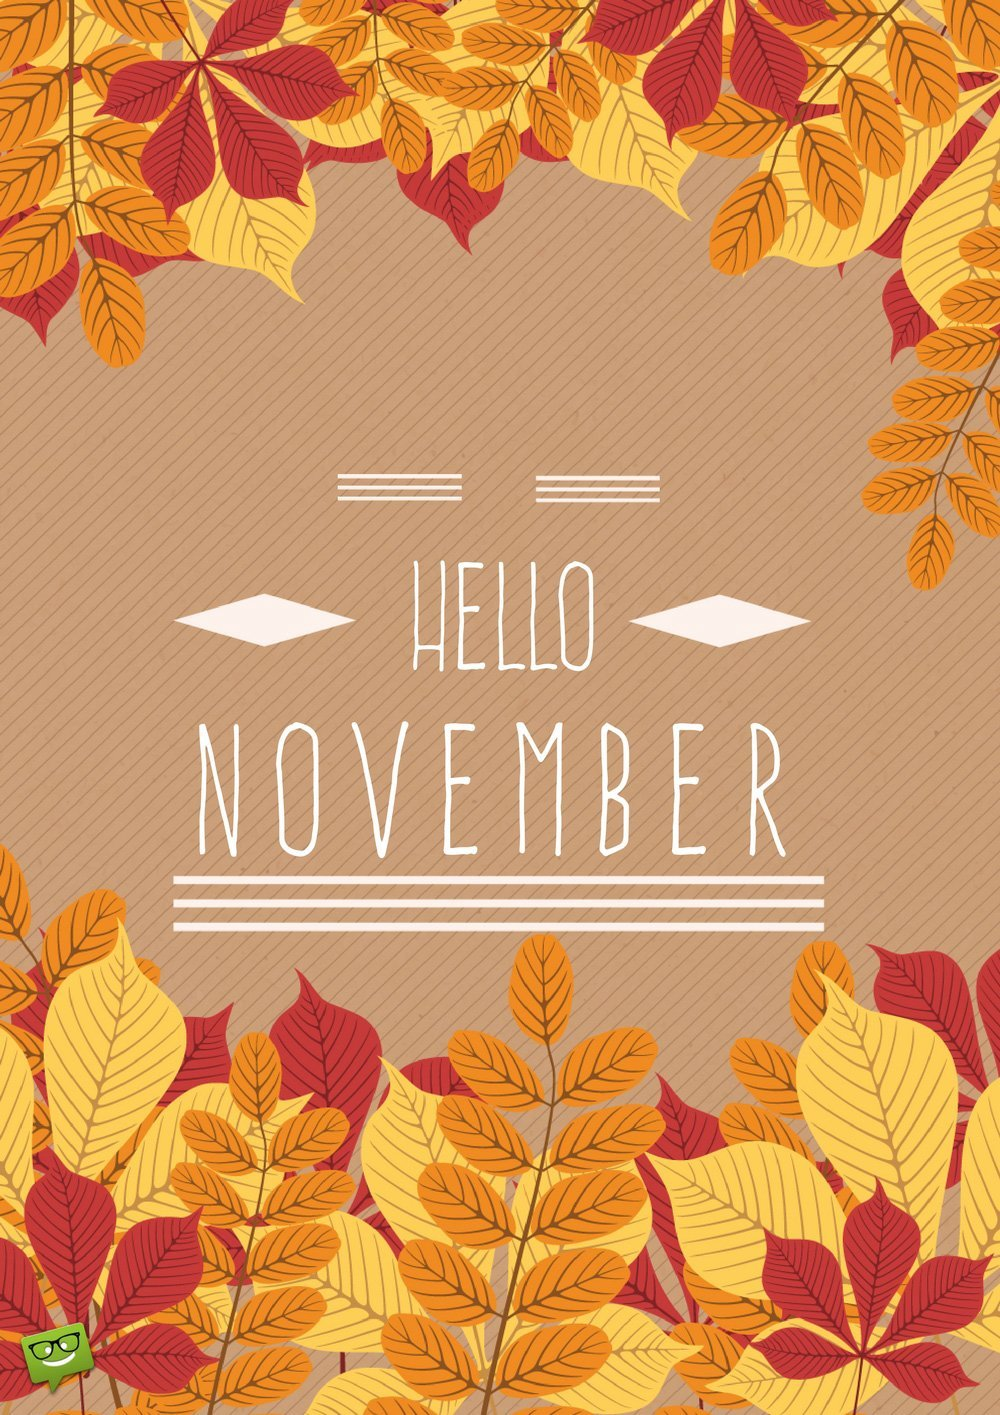 Hello November Wallpapers for iPhone